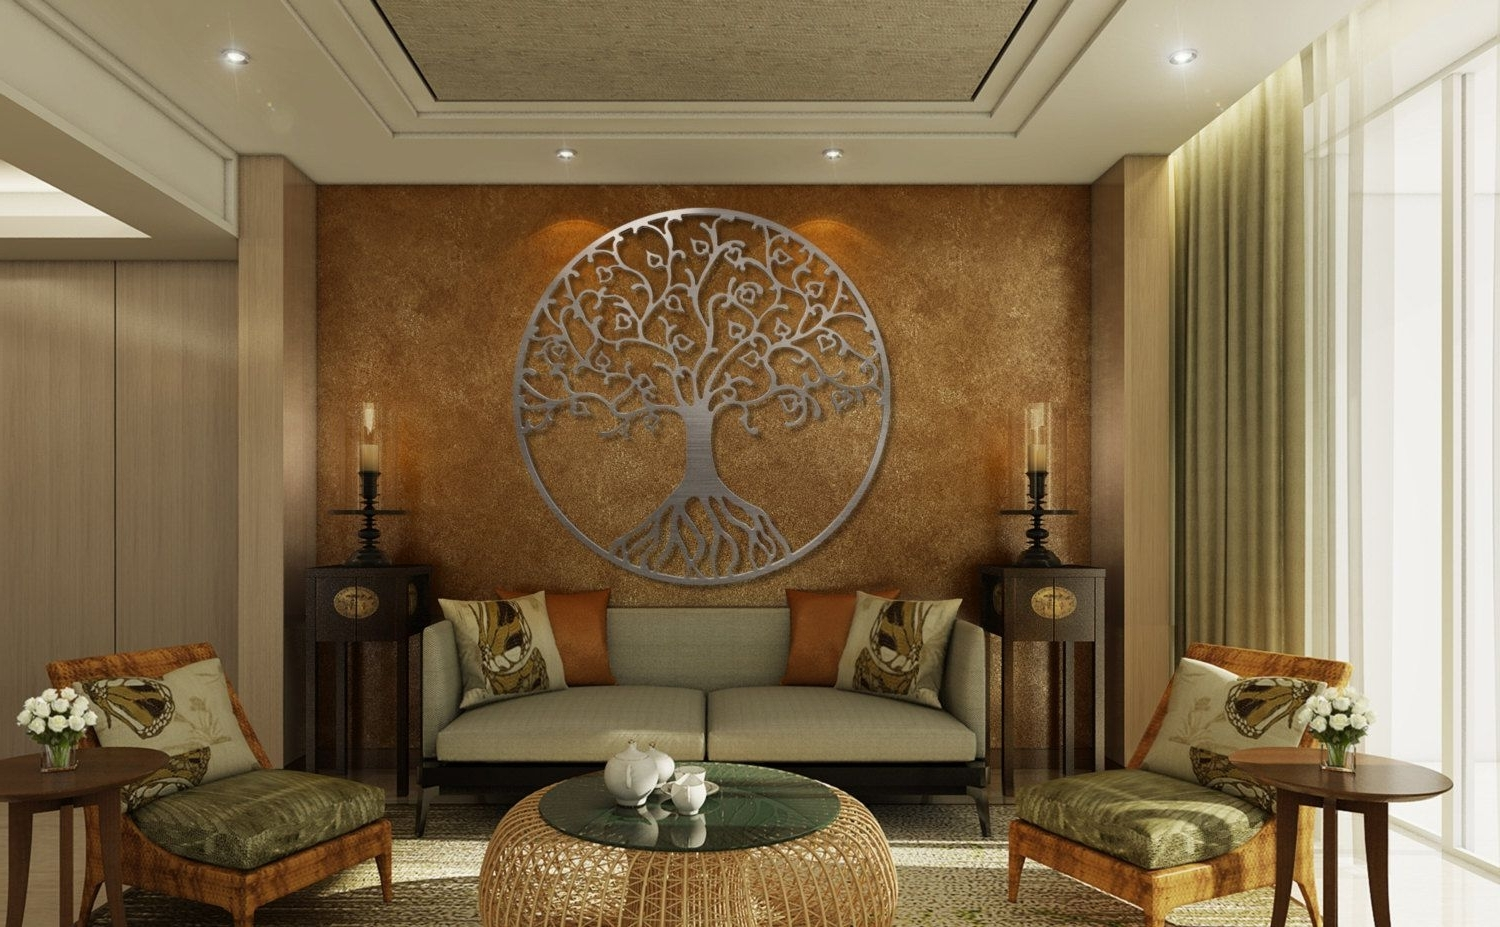 Tree Of Life Metal Wall Art, Metal Tree Wall Art, Circle Wall Art In Favorite Metal Wall Art Decors (View 13 of 15)